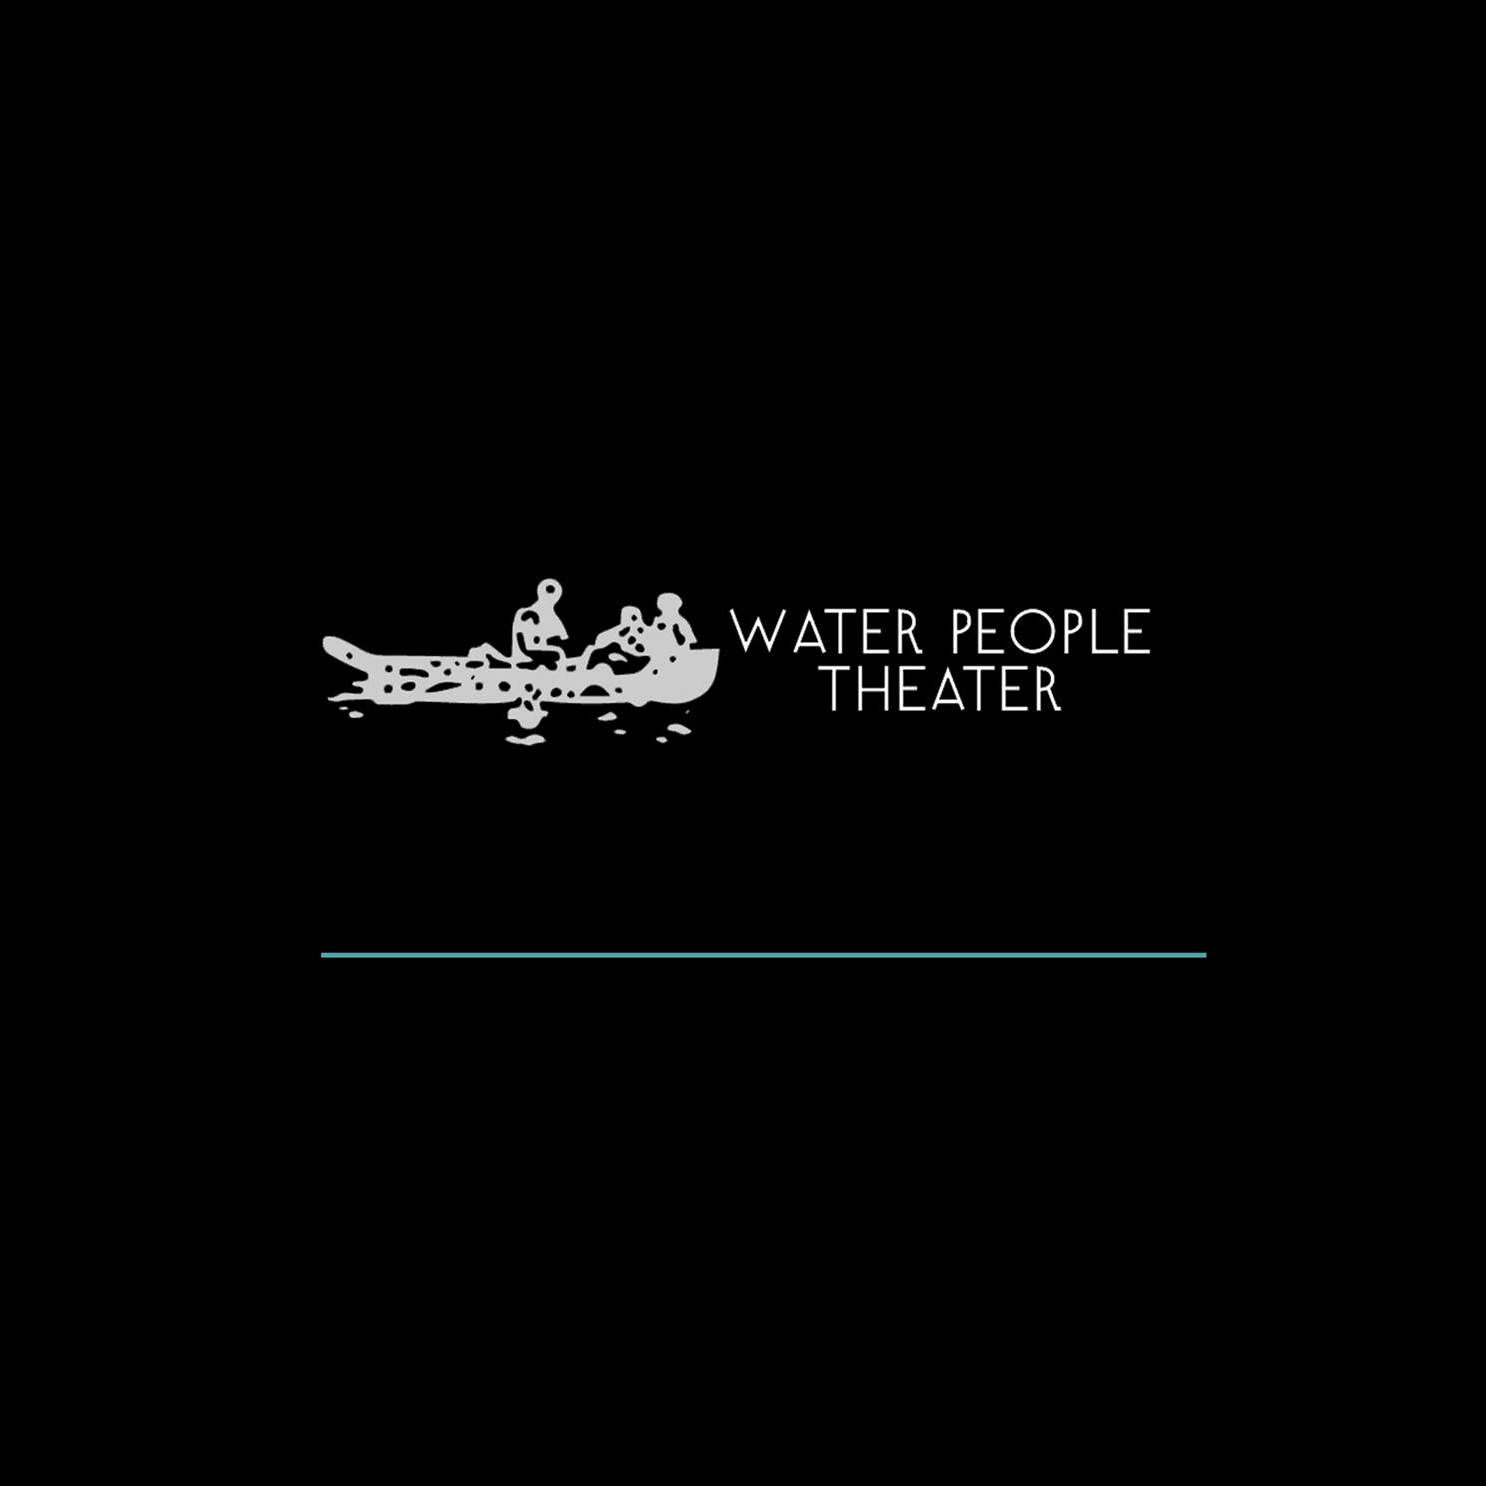 Water People Theater